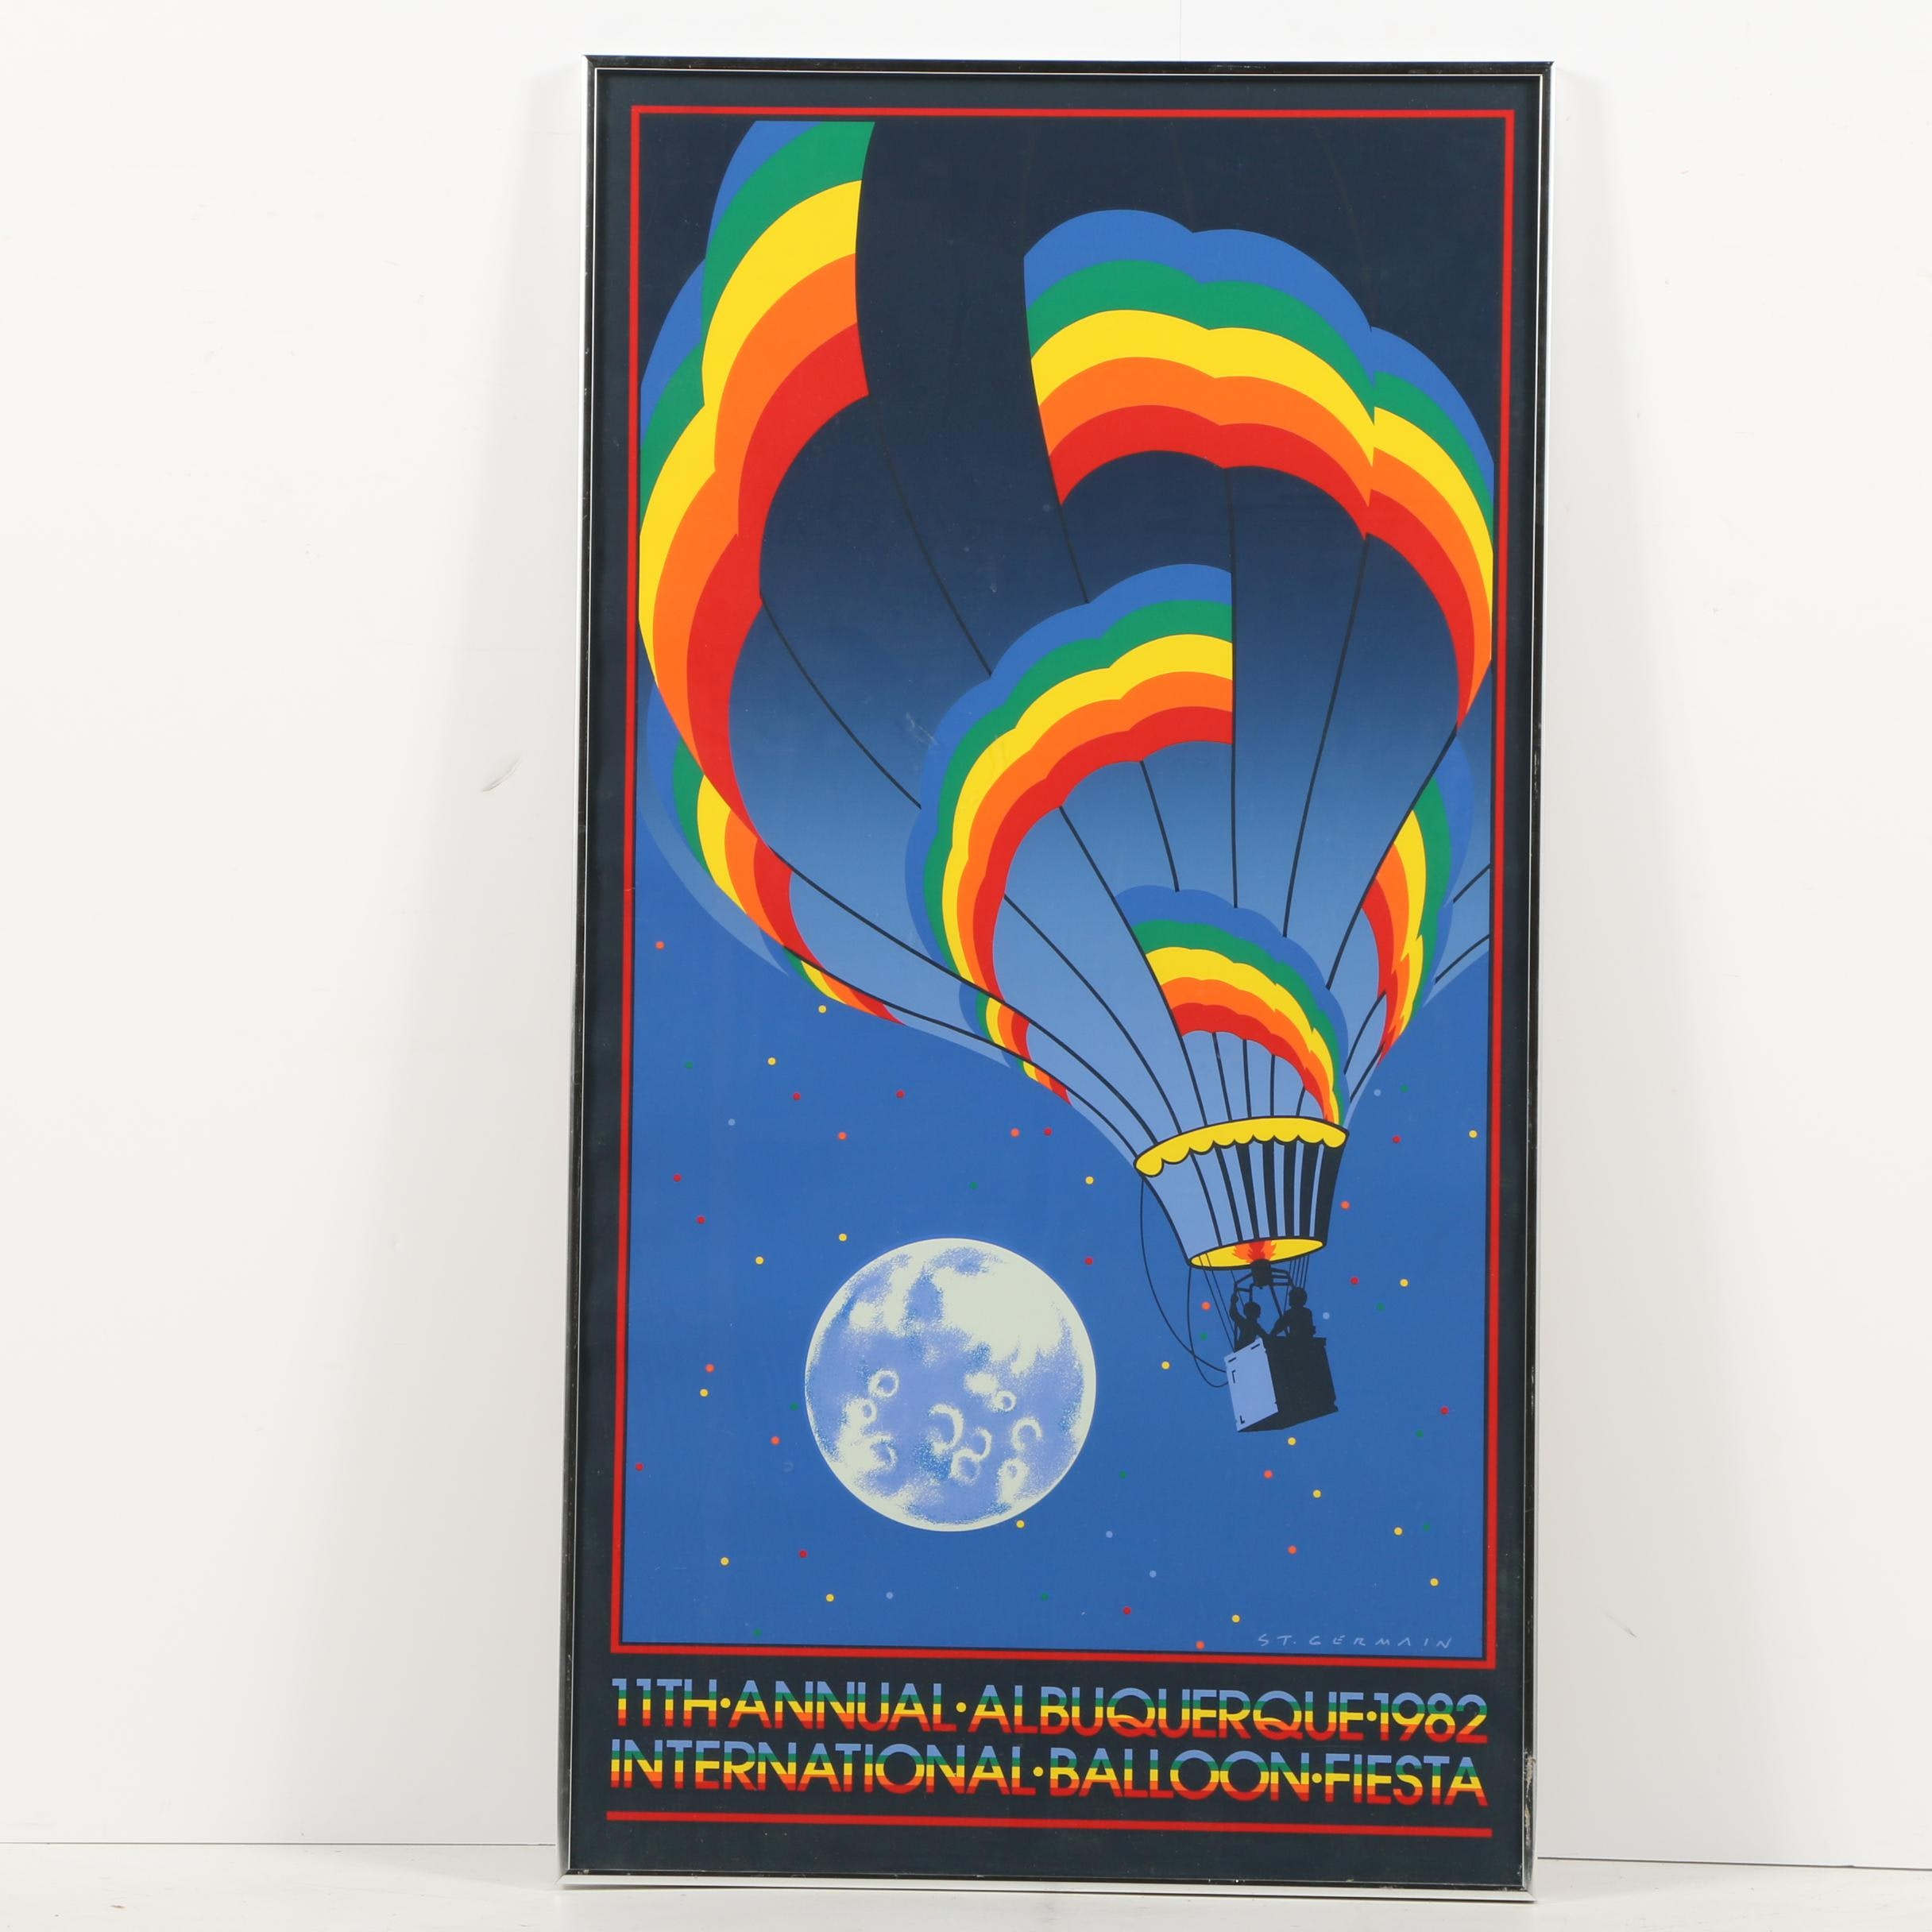 1982 Serigraph Poster for 11th Annual Albuquerque International Balloon Fiesta